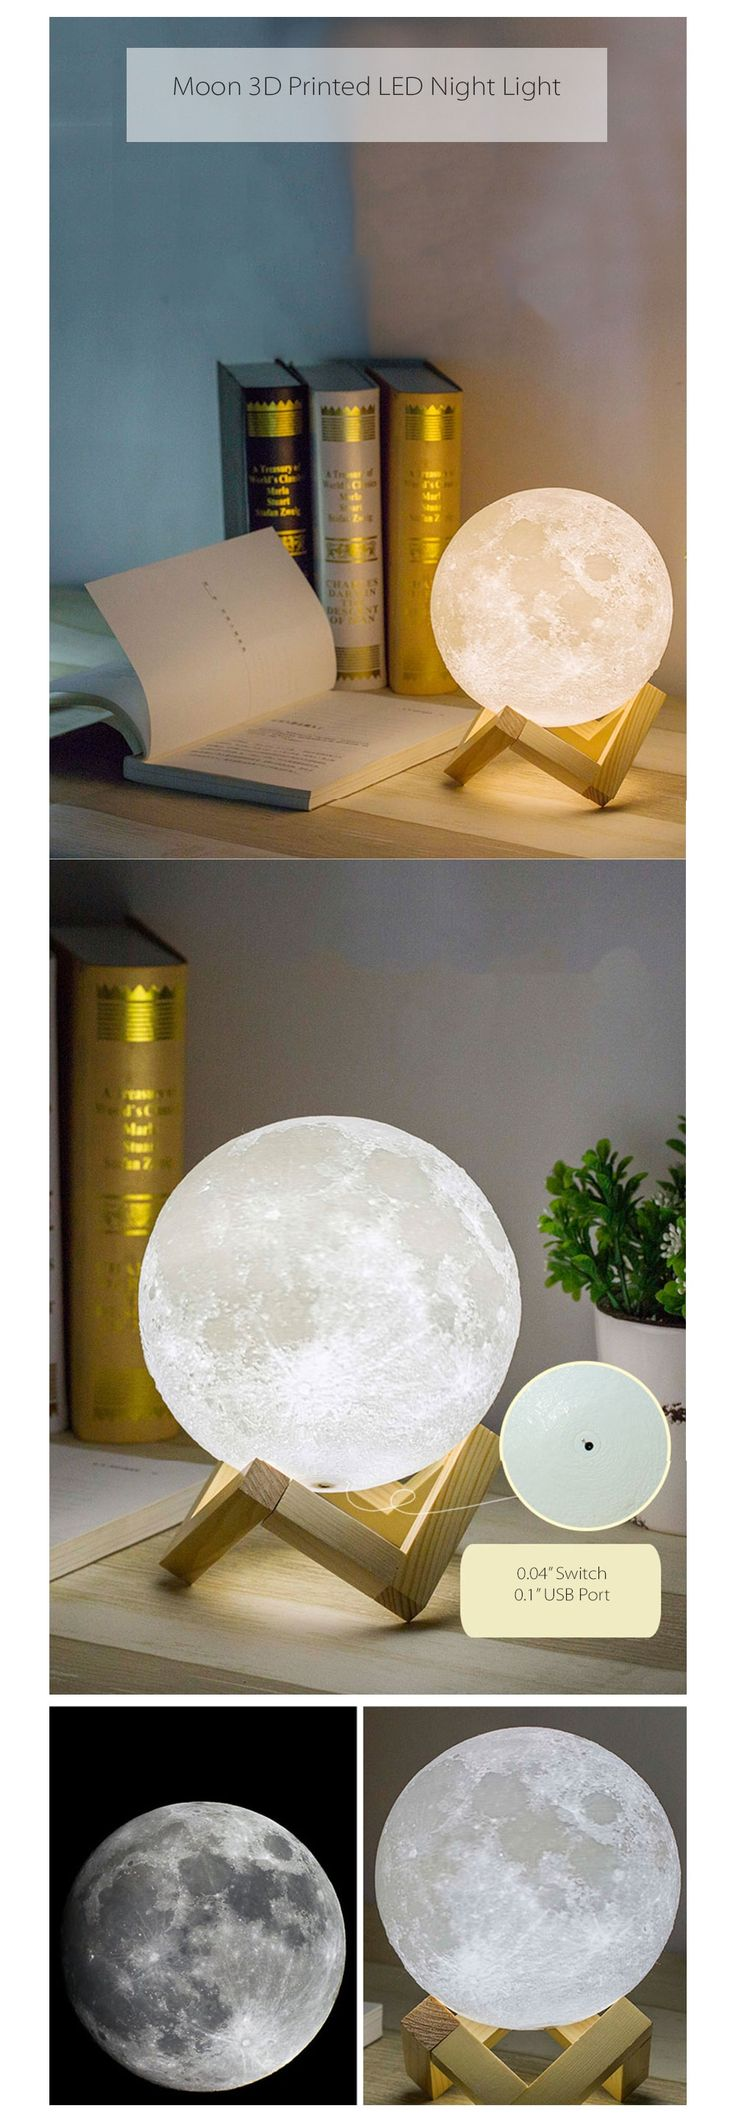 4.7 inche $48  Moon Light USB Charged Night Light